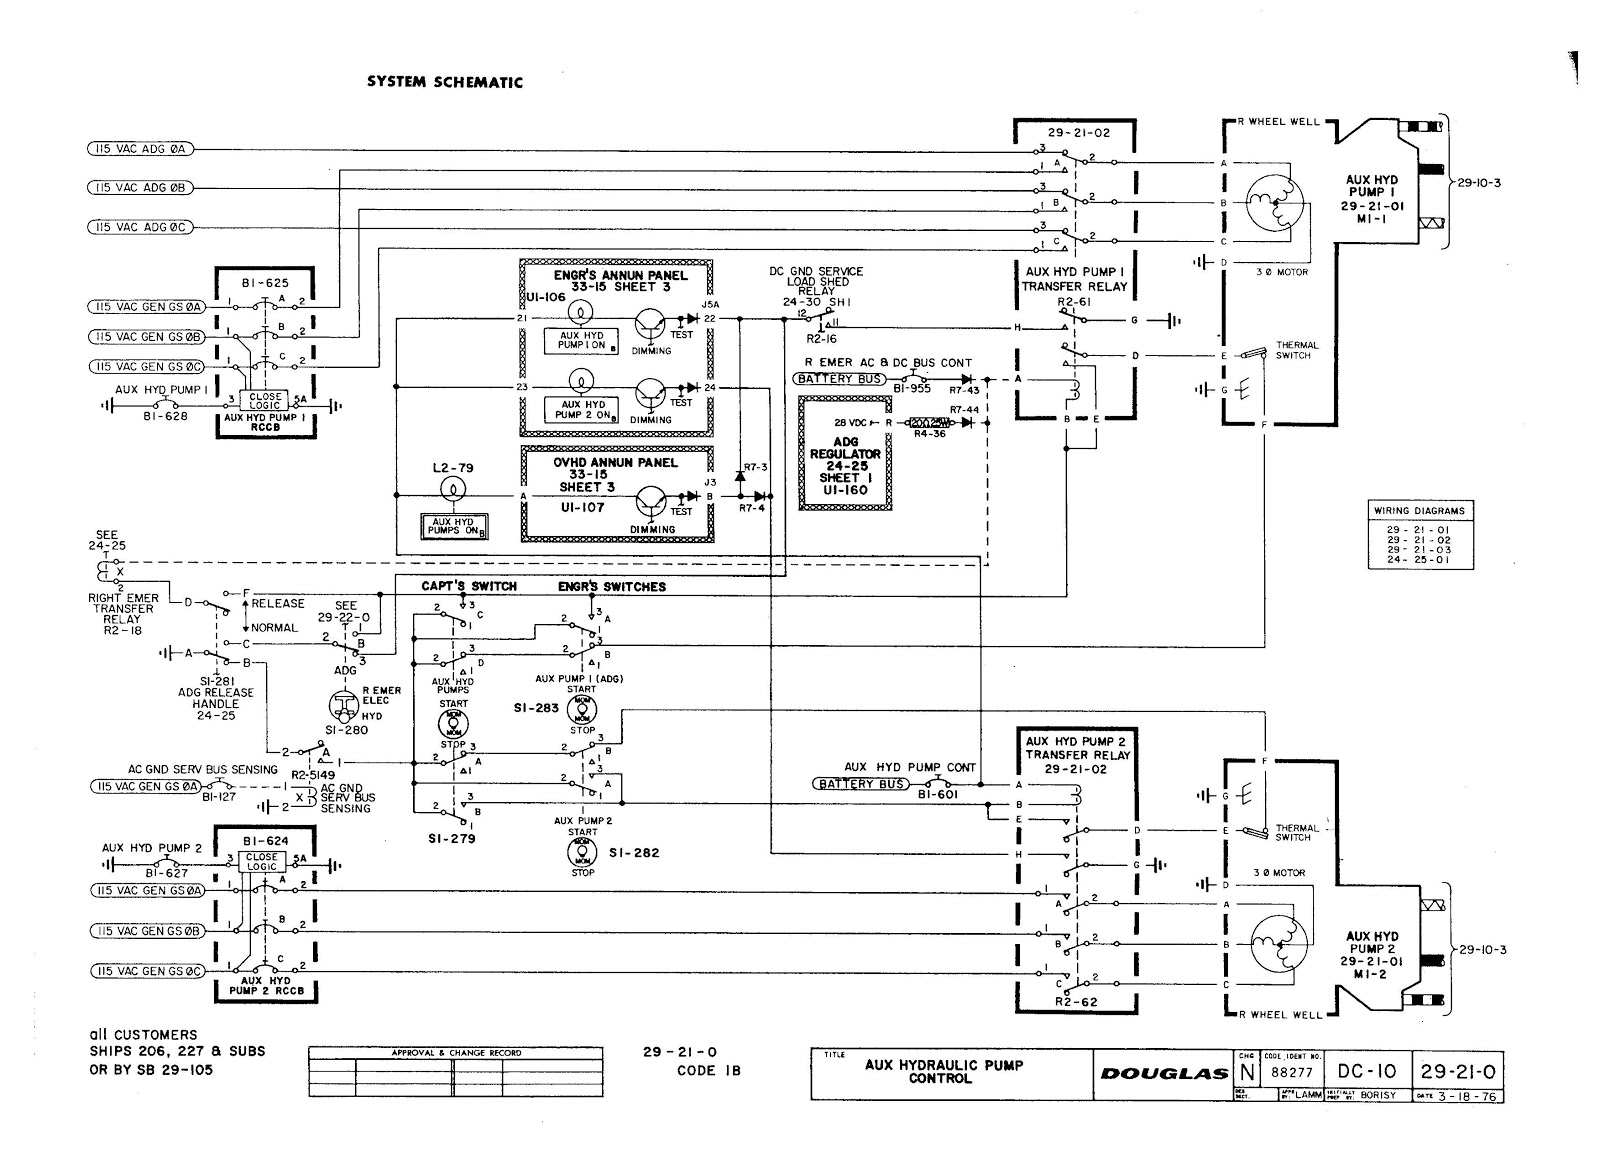 Part 66 Virtual School Aircraft Wiring And Schematic Diagrams Mooney  Aircraft Wiring Diagrams Aircraft Wiring Diagrams